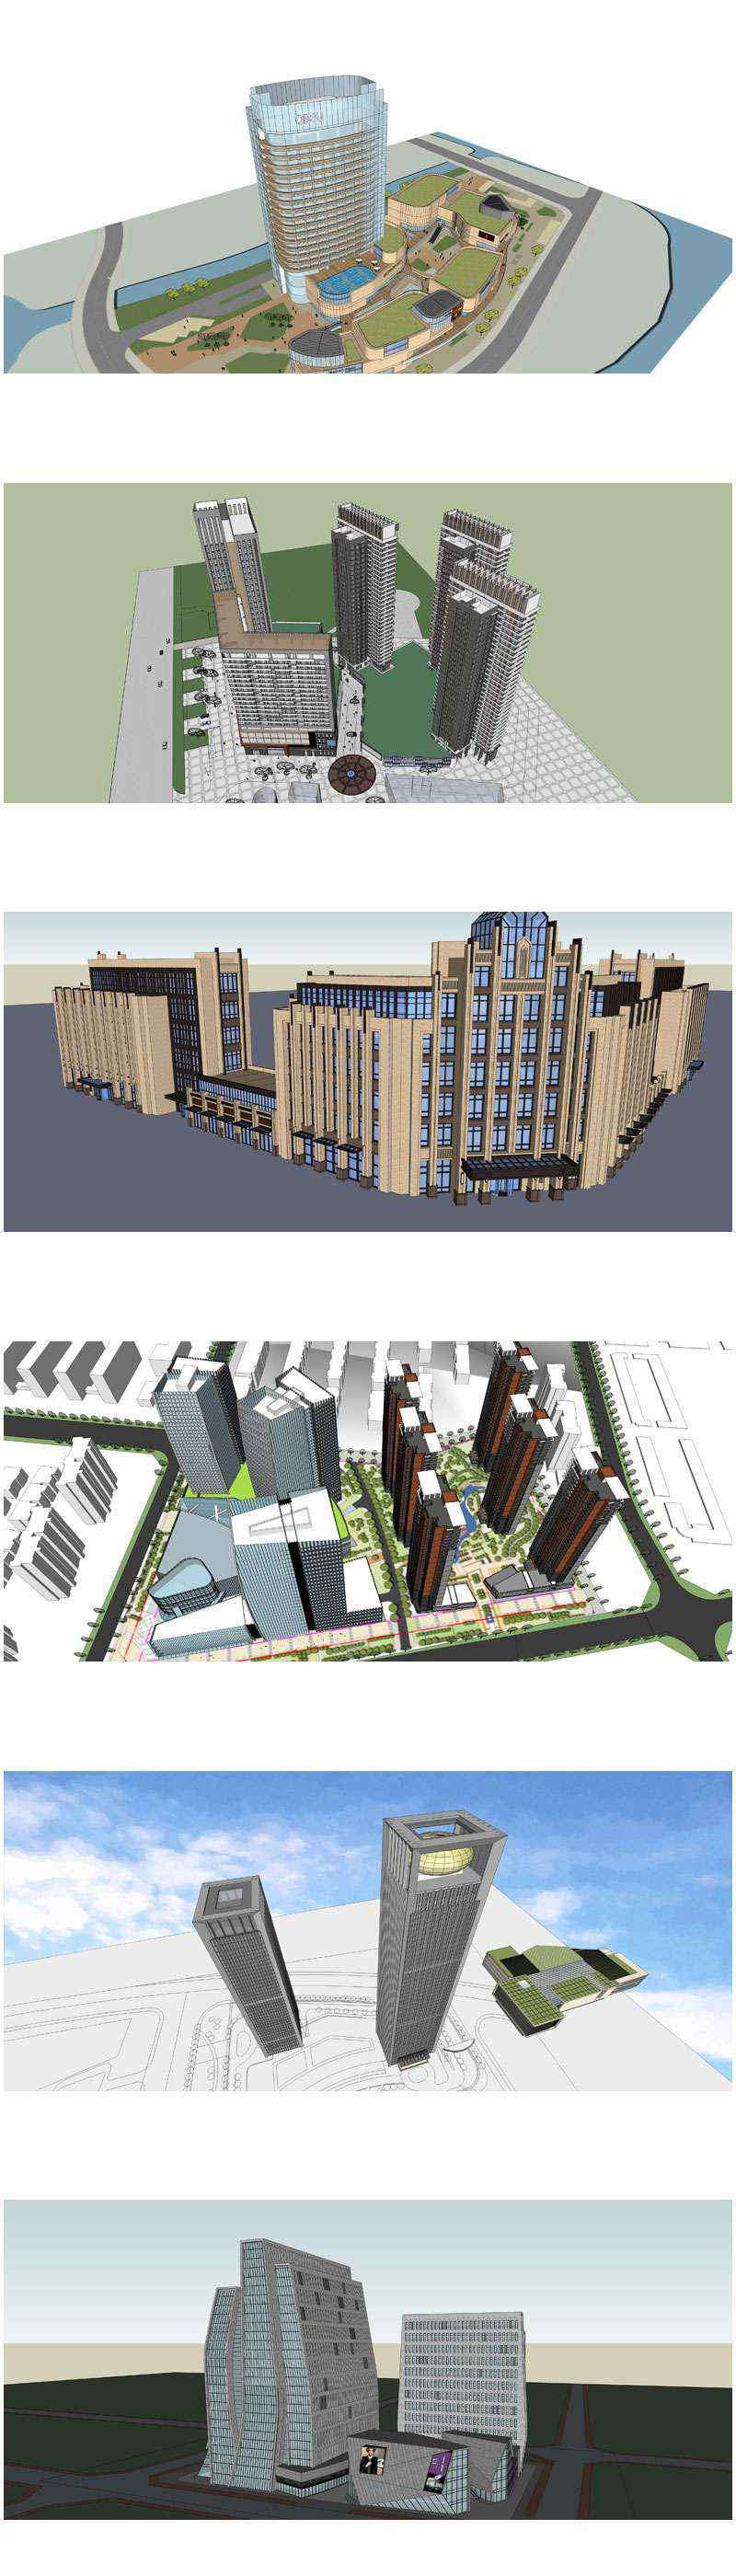 ★Total 98 Types of Commercial,Residential Building Sketchup 3D Models Collection(Best Recommanded!!)